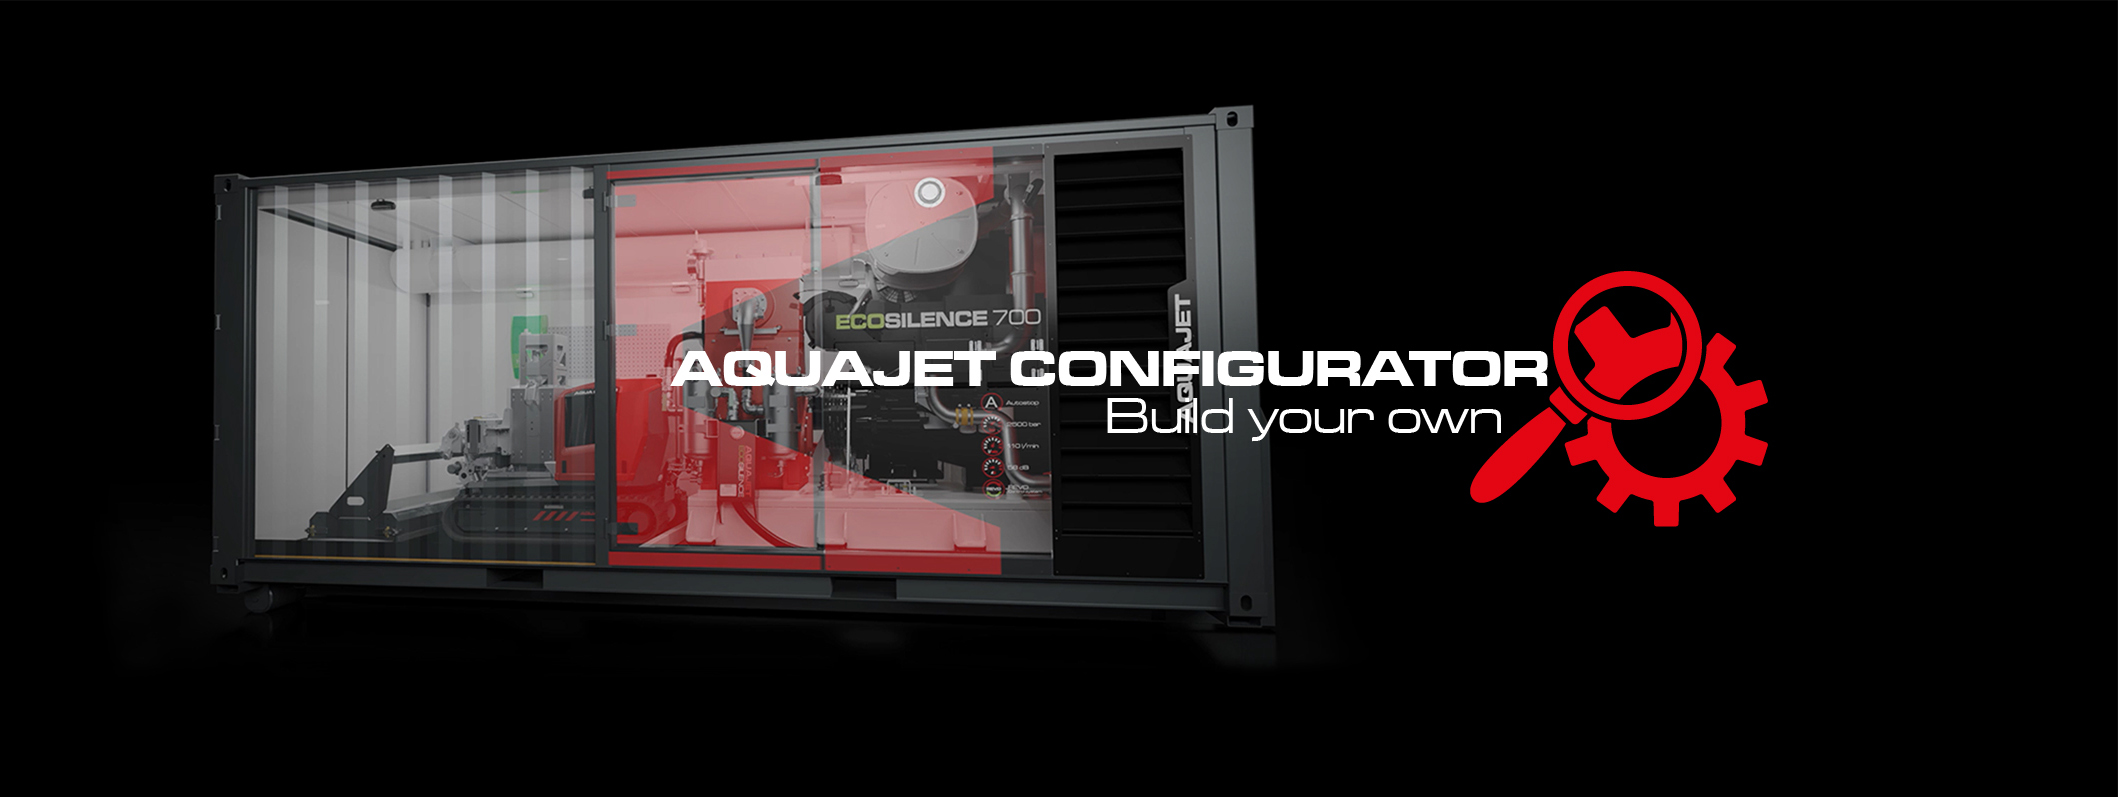 configurator aquajet build your own hydrodemolition ecosilence 3.0 equipment